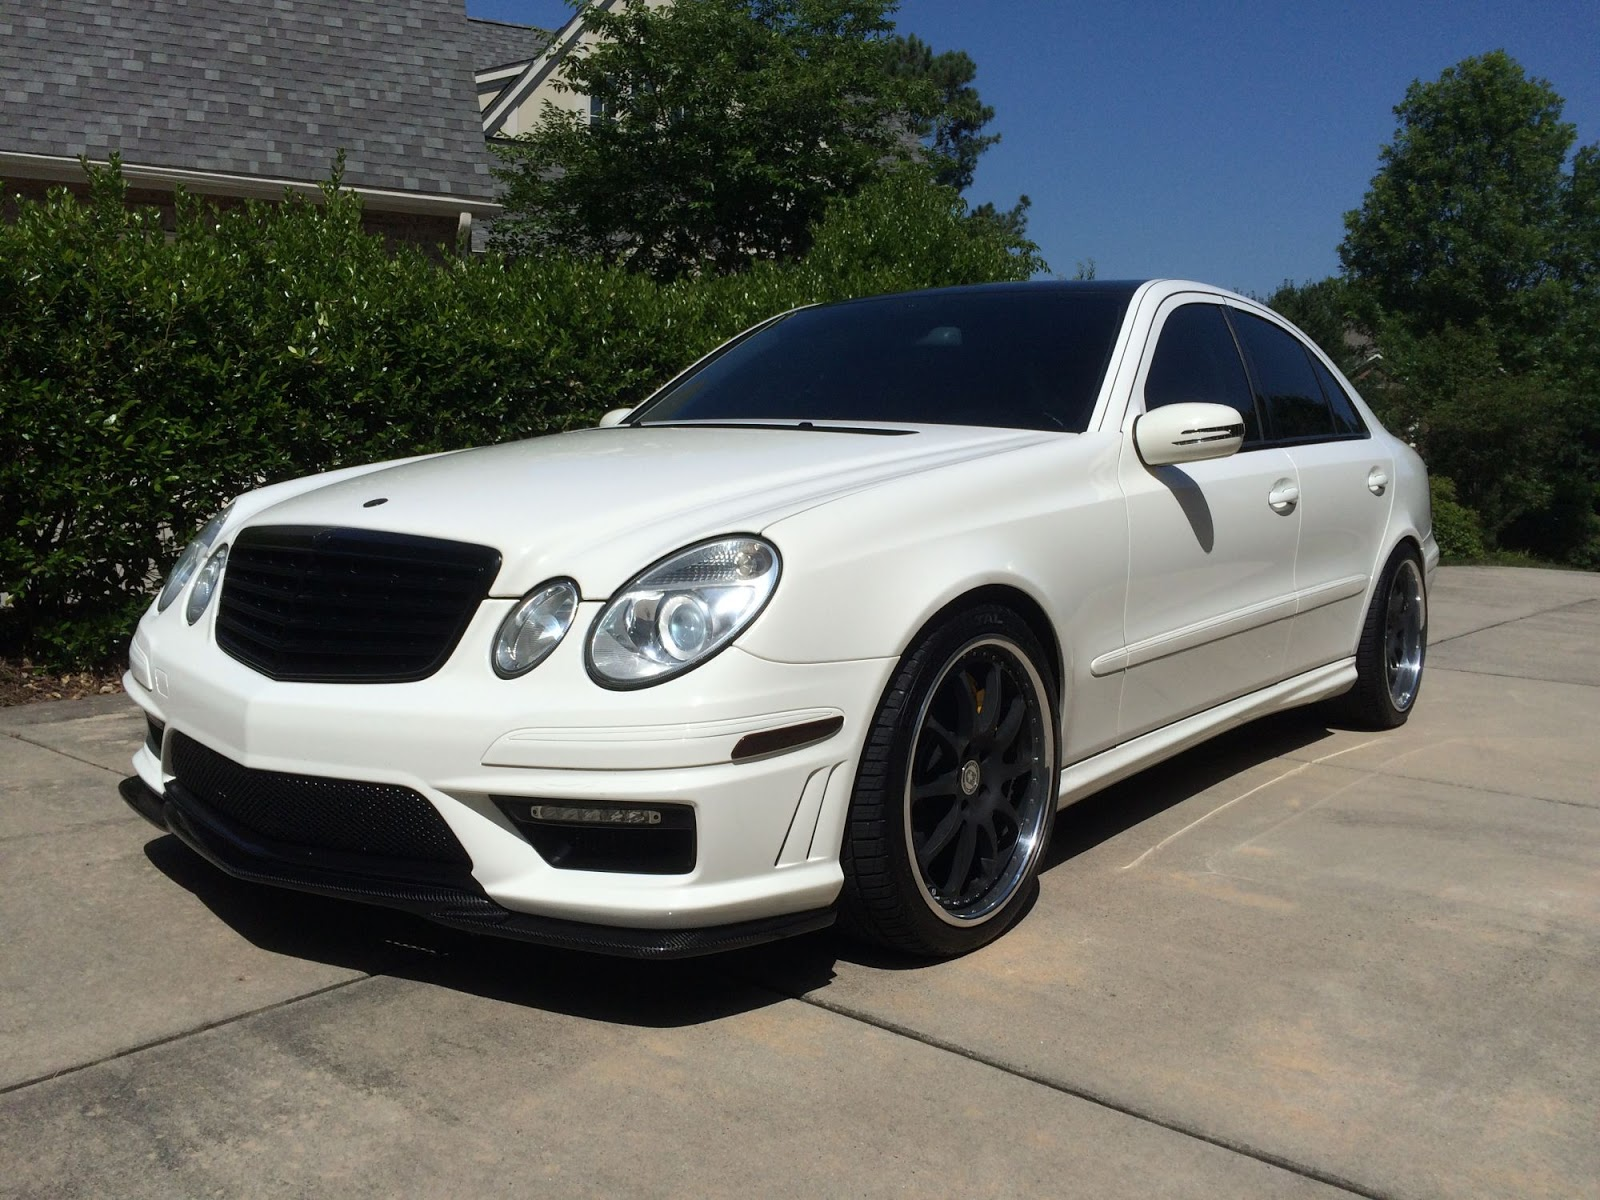 2004 mercedes benz w211 e55 amg on hre performance wheels benztuning. Black Bedroom Furniture Sets. Home Design Ideas